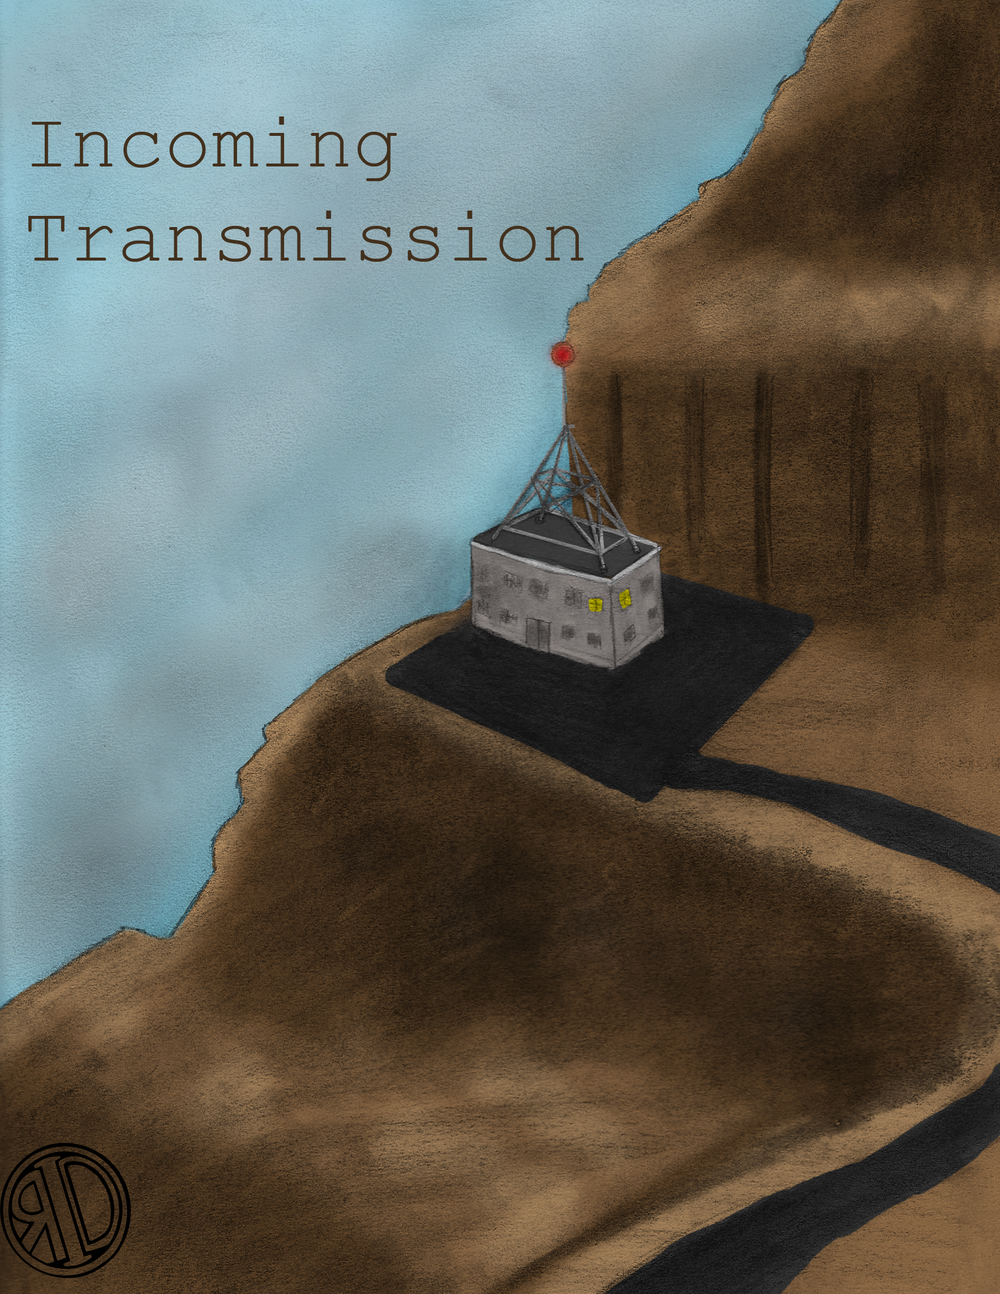 Incoming Transmission Full Edition - Incoming Transmission is a post-apocalyptic RPG set in a distant dystopian future. Those that aren't chosen as part of the ruling council live in squalor and filth, just trying to scrounge enough food to survive. Those that don't pull their weight are banished from cities and made to fend for themselves.But hidden in the air, there is hope. Amidst the propaganda and heavily edited news there is one station that speaks the truth, sending out a call to all those that wish to answer: 719 RID. DJ'd by Triple D herself, spinning the only good music and spitting real news, spreading hope amongst the hopeless.It began at Global Game Jam 2018 and now it's ready for you to play with new content, more lore, and available in both PDF and Print To Order.